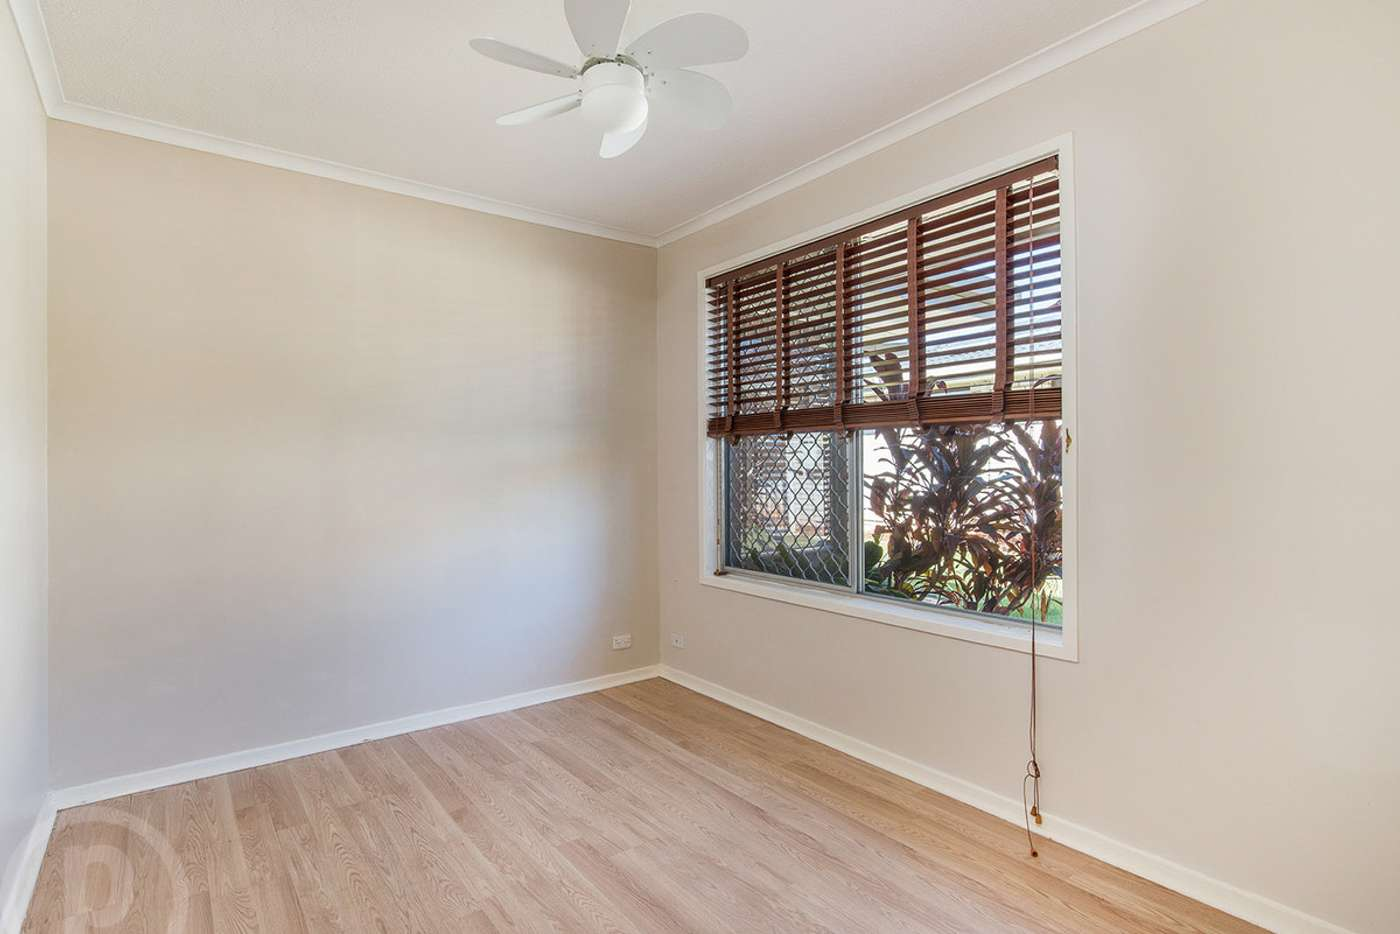 Sixth view of Homely house listing, 5 Hakea Street, Sunnybank QLD 4109